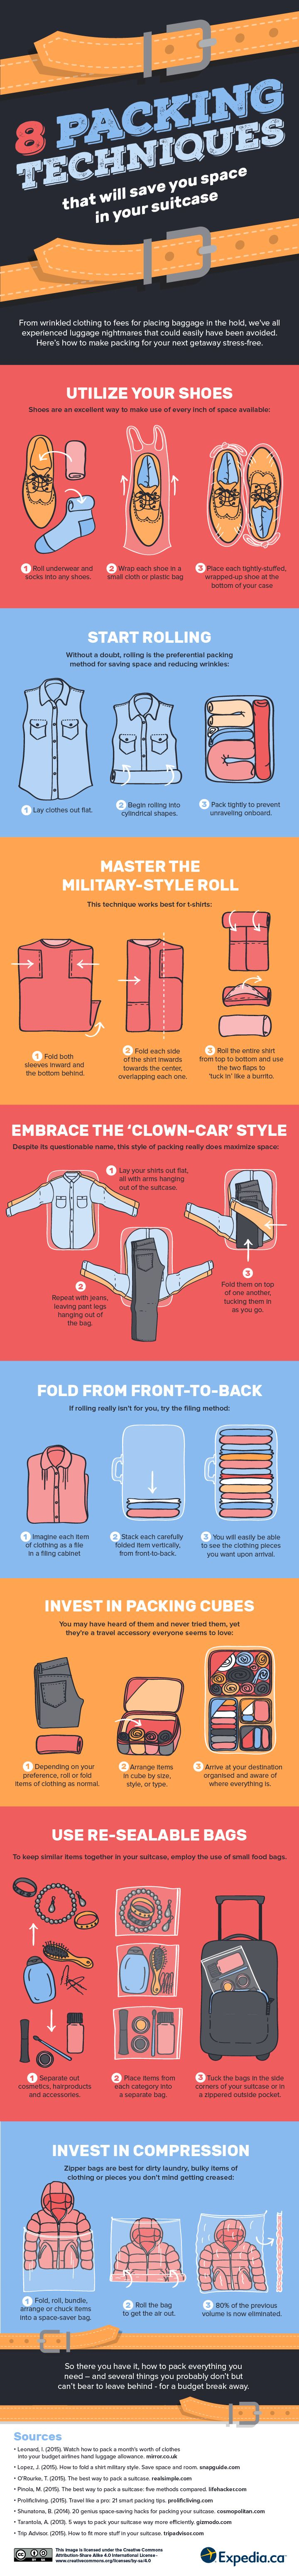 8 effective #packing techniques that save space in your suitcase #travel #tips #infographic http://www.earthsattractions.com/8-effective-packing-techniques-infographic/